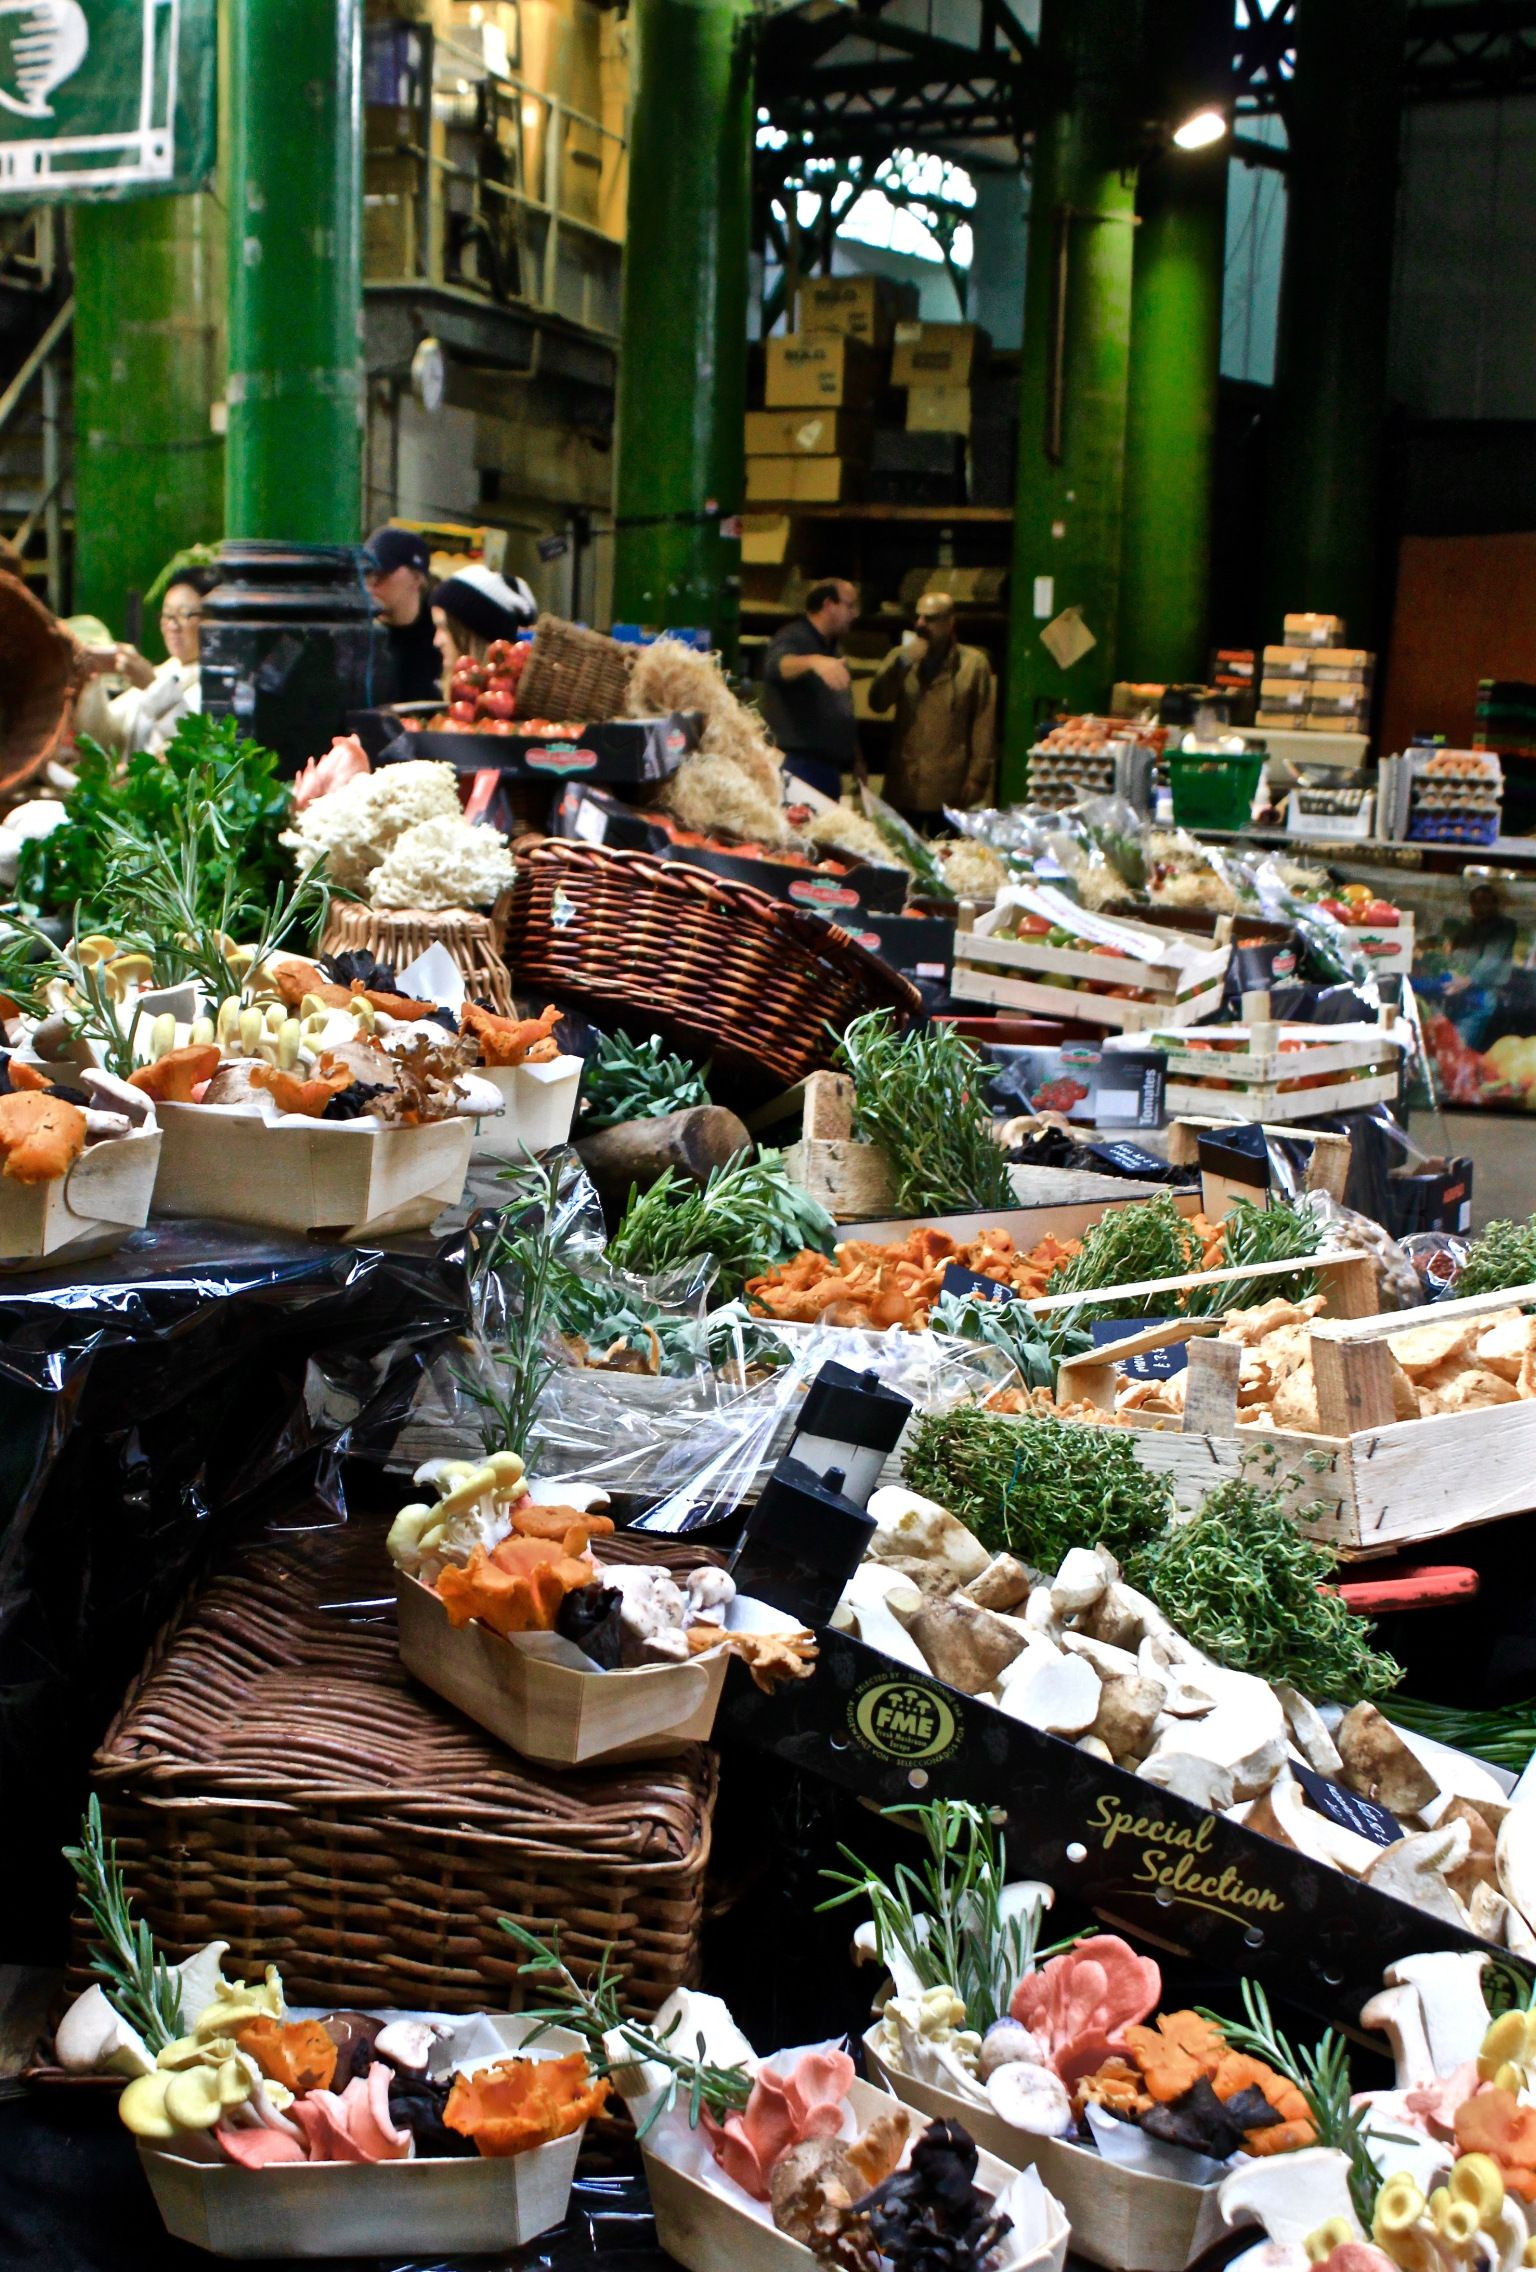 I love Borough Market. It's a vegetable enthusiast's dream, and I am a self-confessed vegetable enthusiast. To give you a bit of background, Borough Market is one of London's olde…